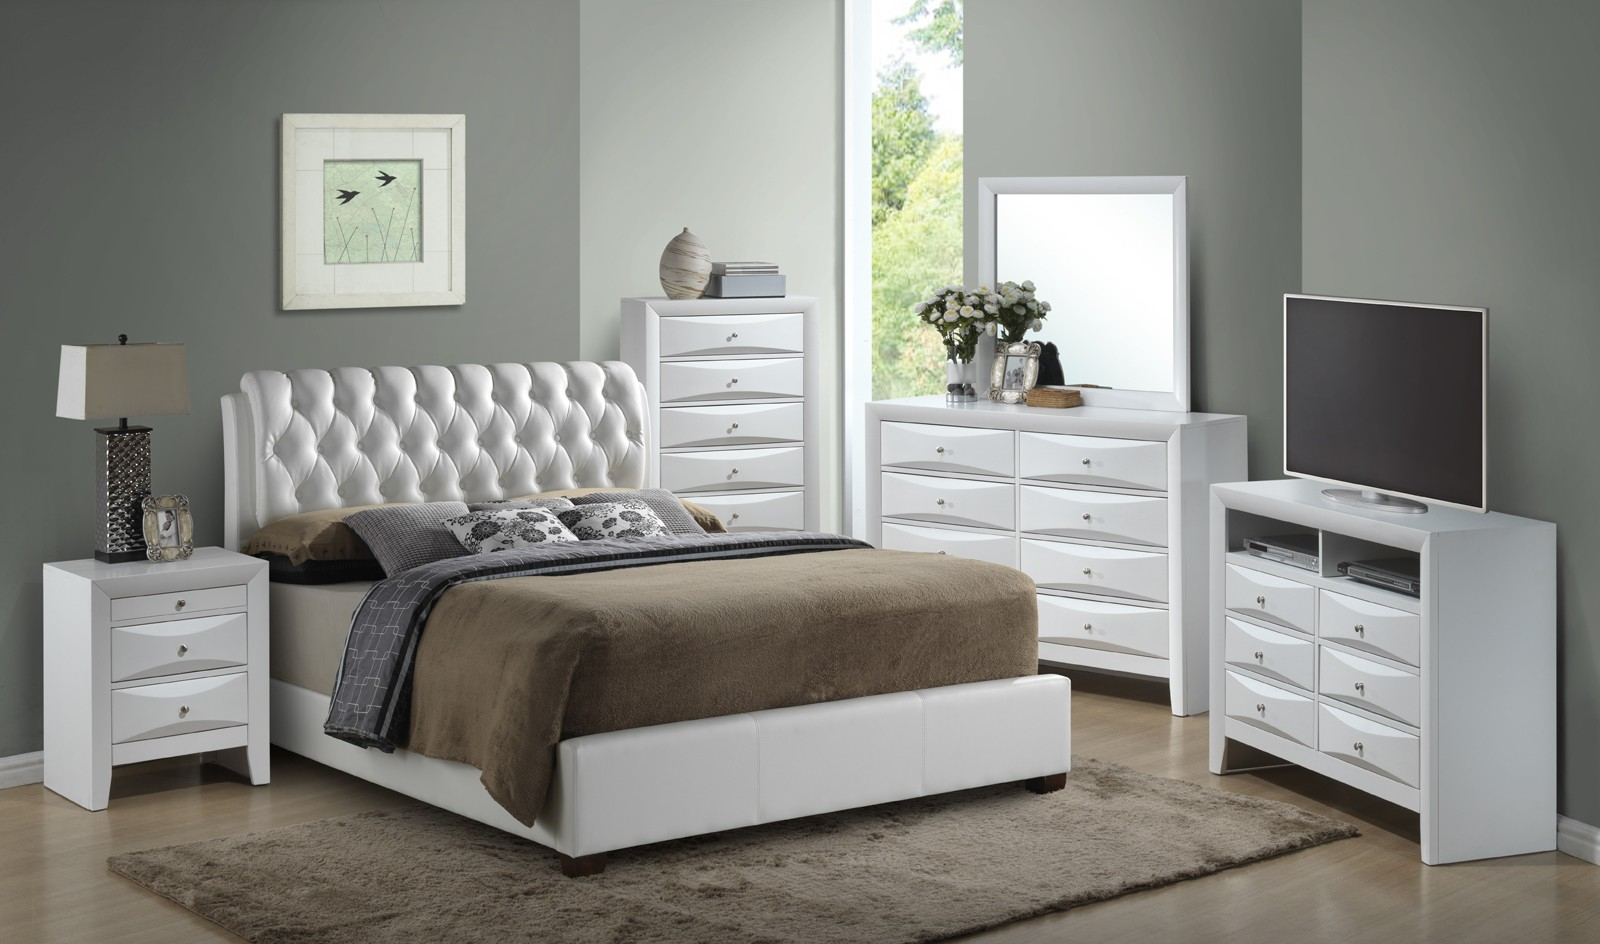 Glory Furniture G1570 King Button-Tufted Bed in White G1570C-KB-UP